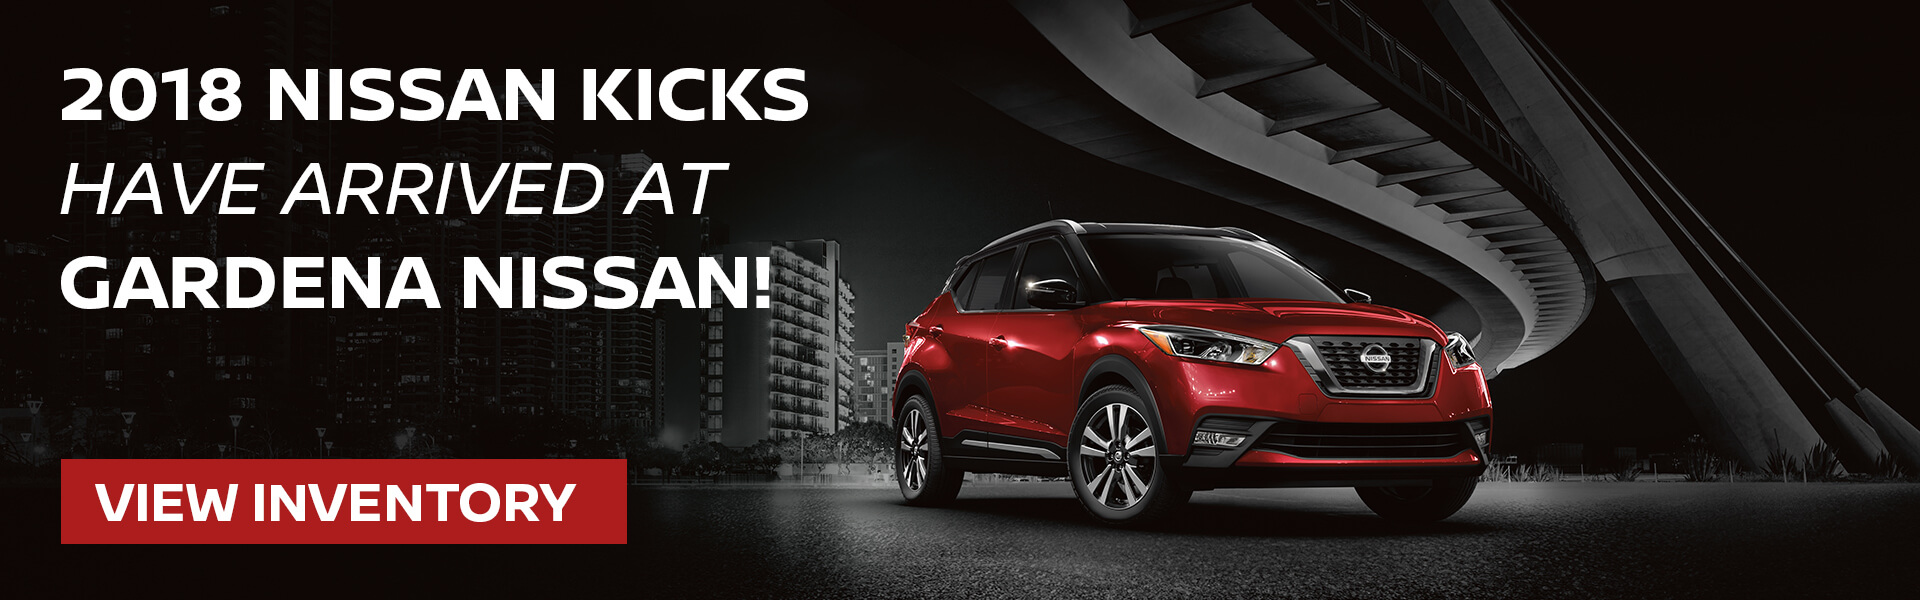 Wonderful 2018 Nissan Kicks